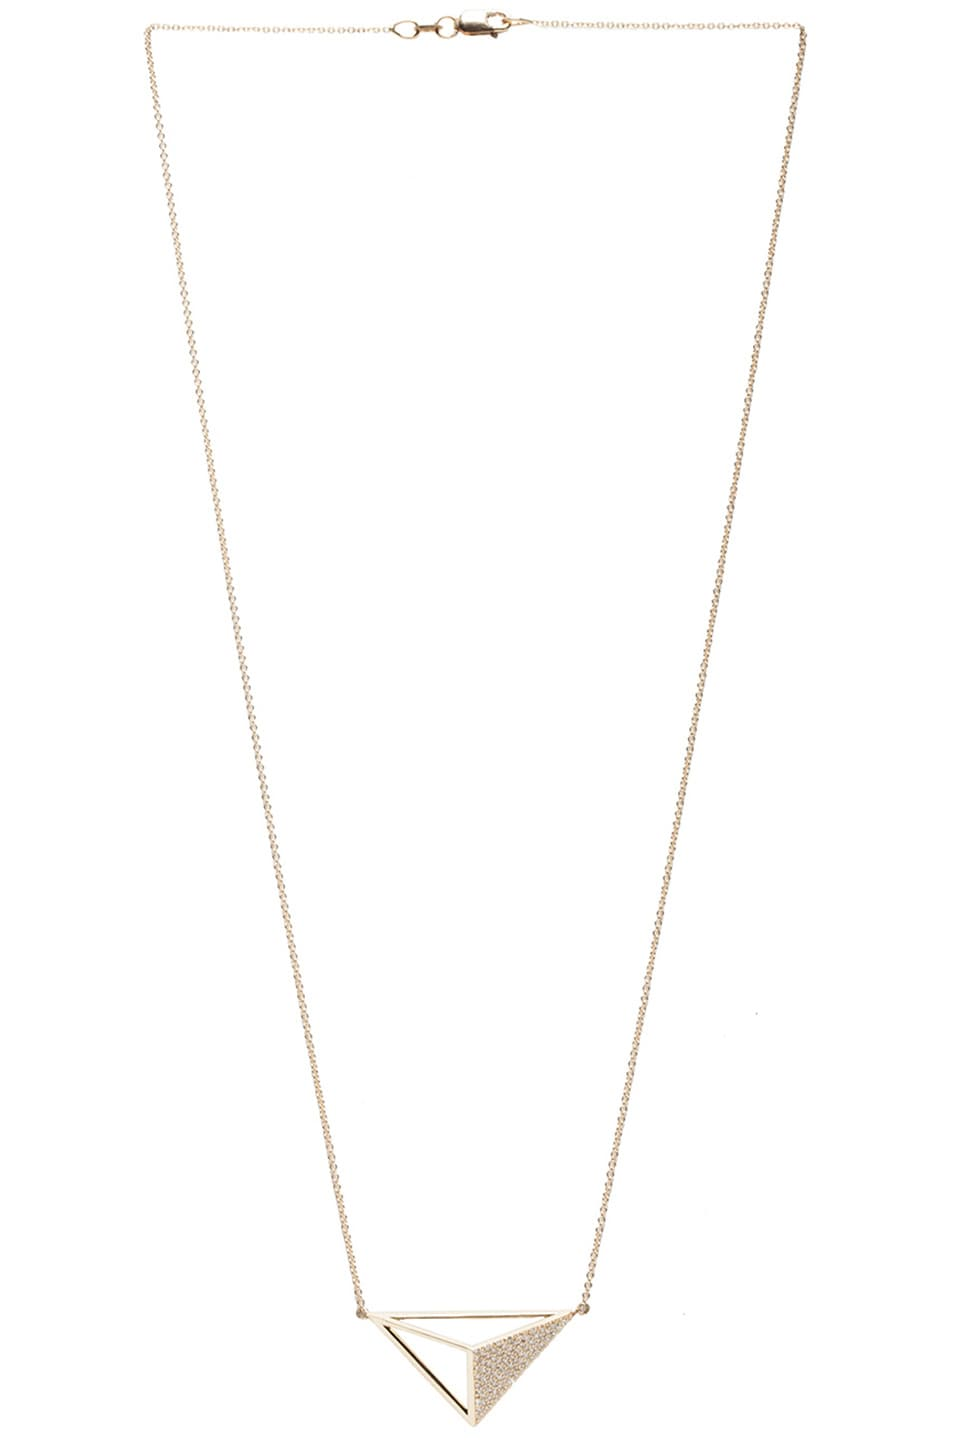 Image 1 of Ileana Makri Bermuda Triangle Necklace in Yellow Gold